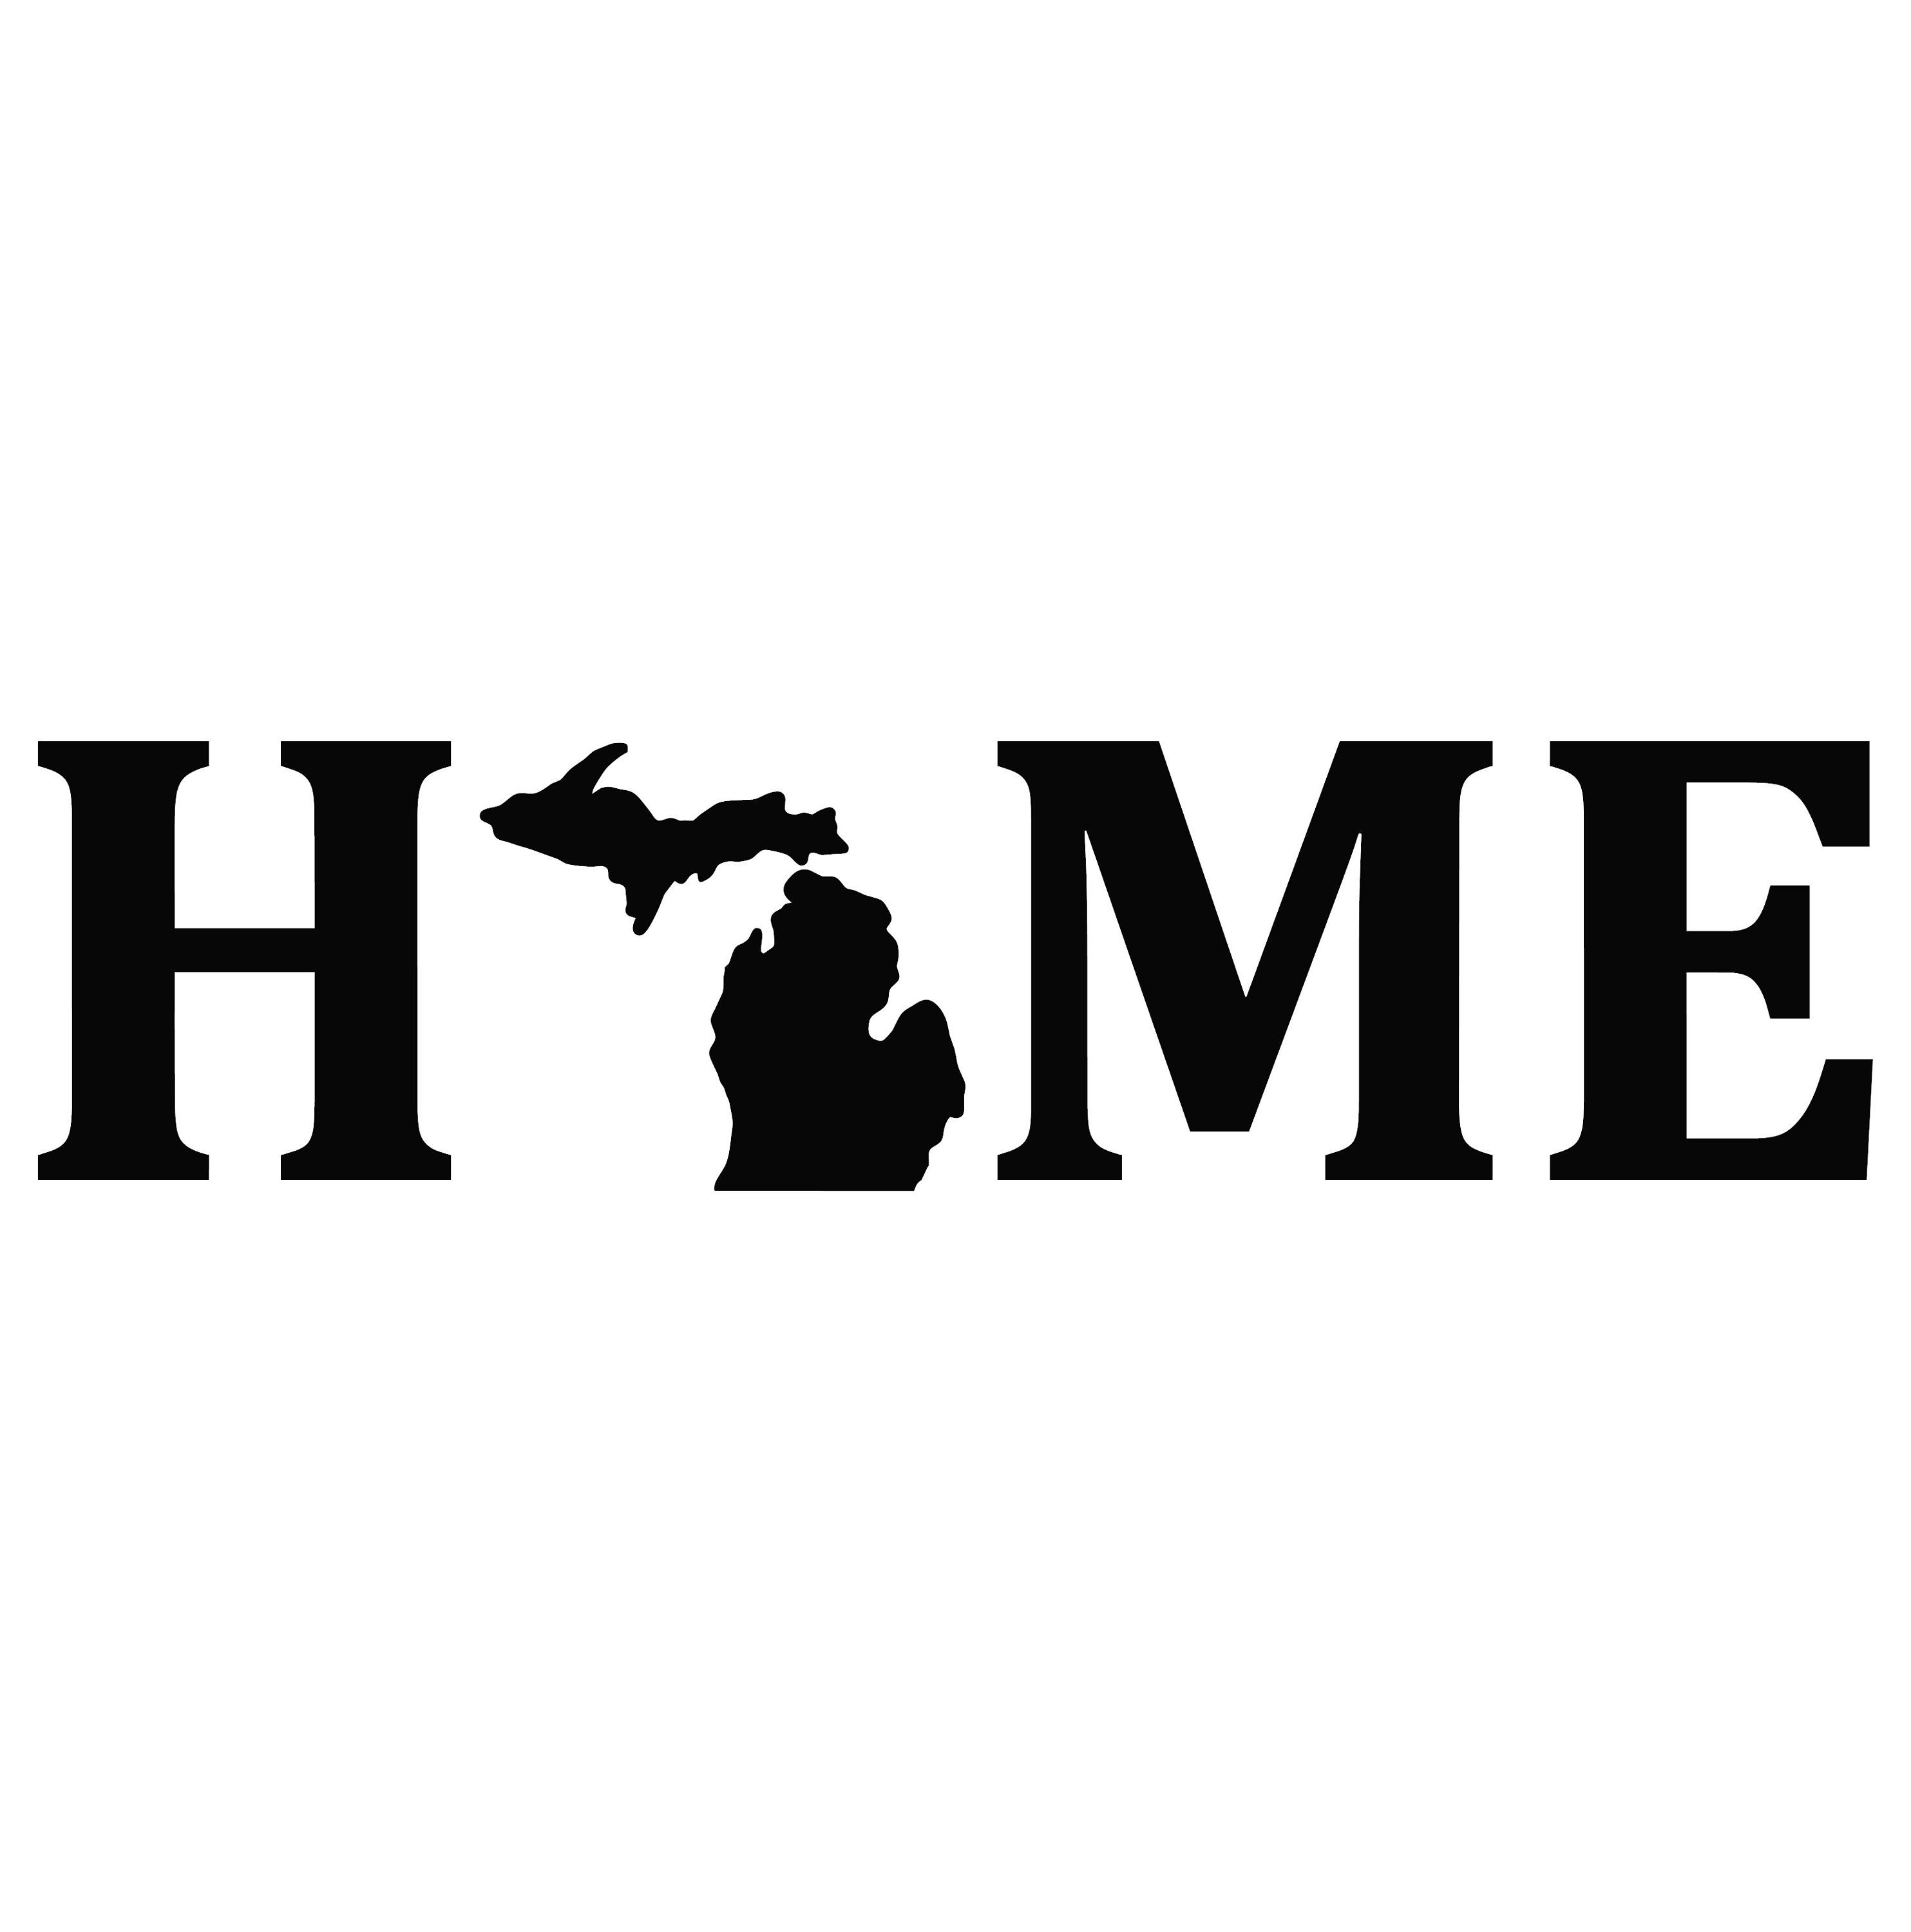 Michigan Is Home Vinyl Decal Sticker Multiple Color Choices Etsy Vinyl Decals Vinyl Michigan [ 3000 x 2967 Pixel ]